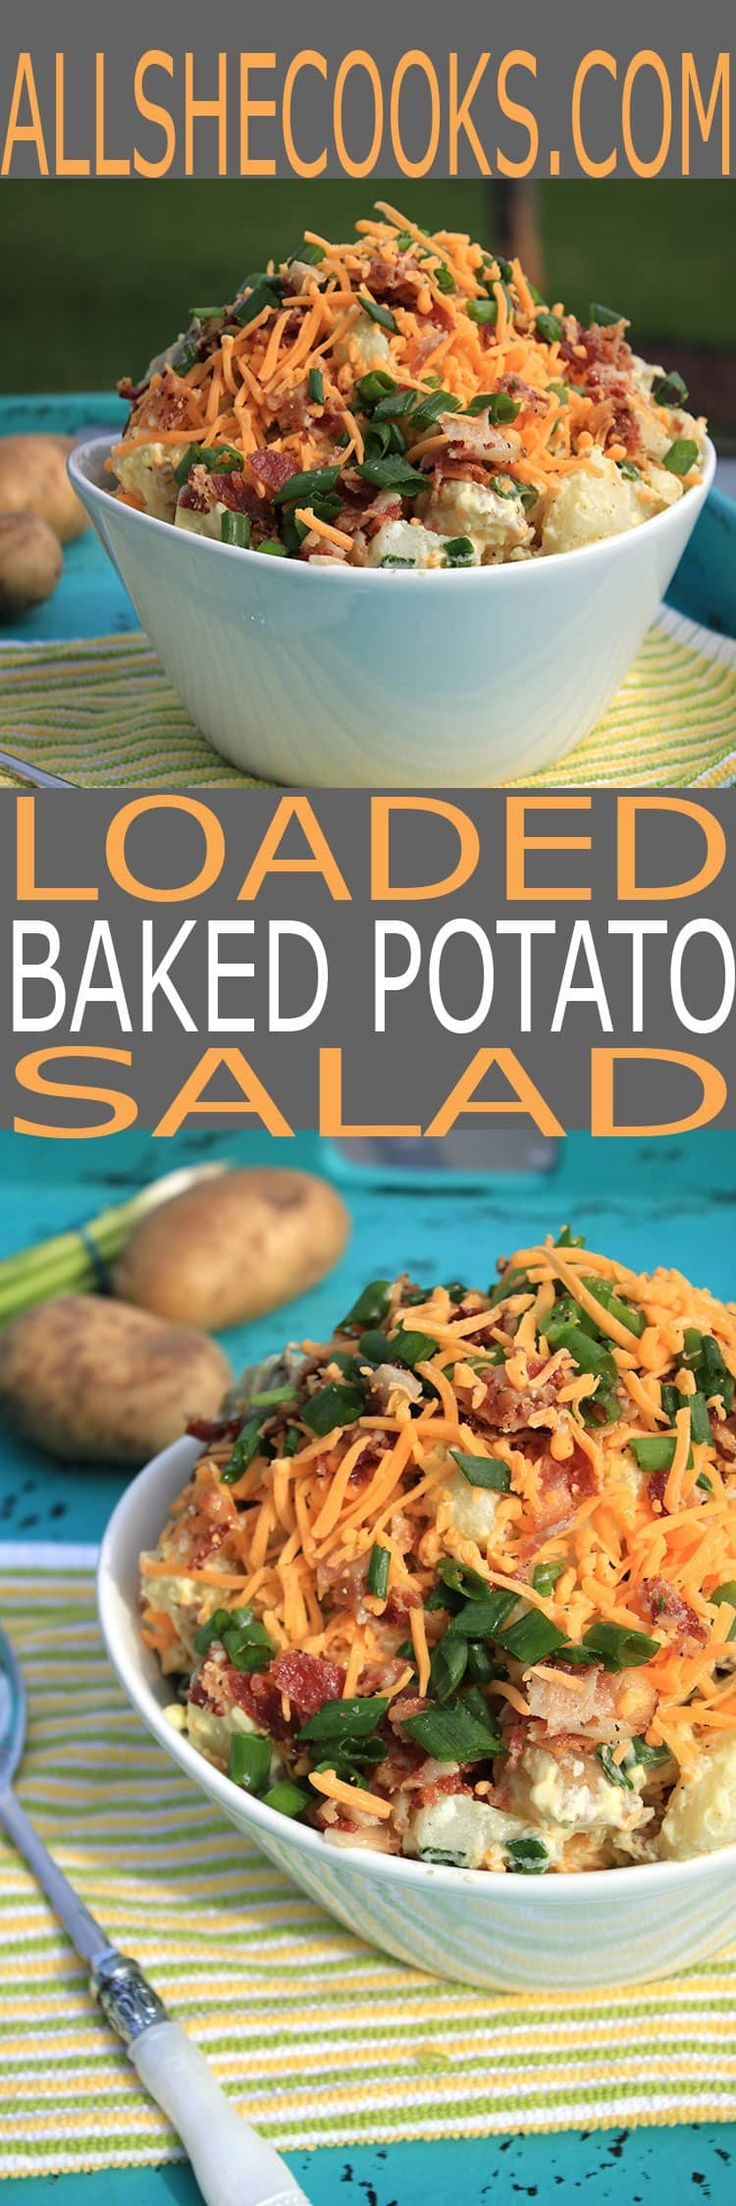 Looking for some of the best picnic side dishes? You will LOVE our Loaded Baked Potato Salad. This is the perfect side dish to bring to your next bbq.